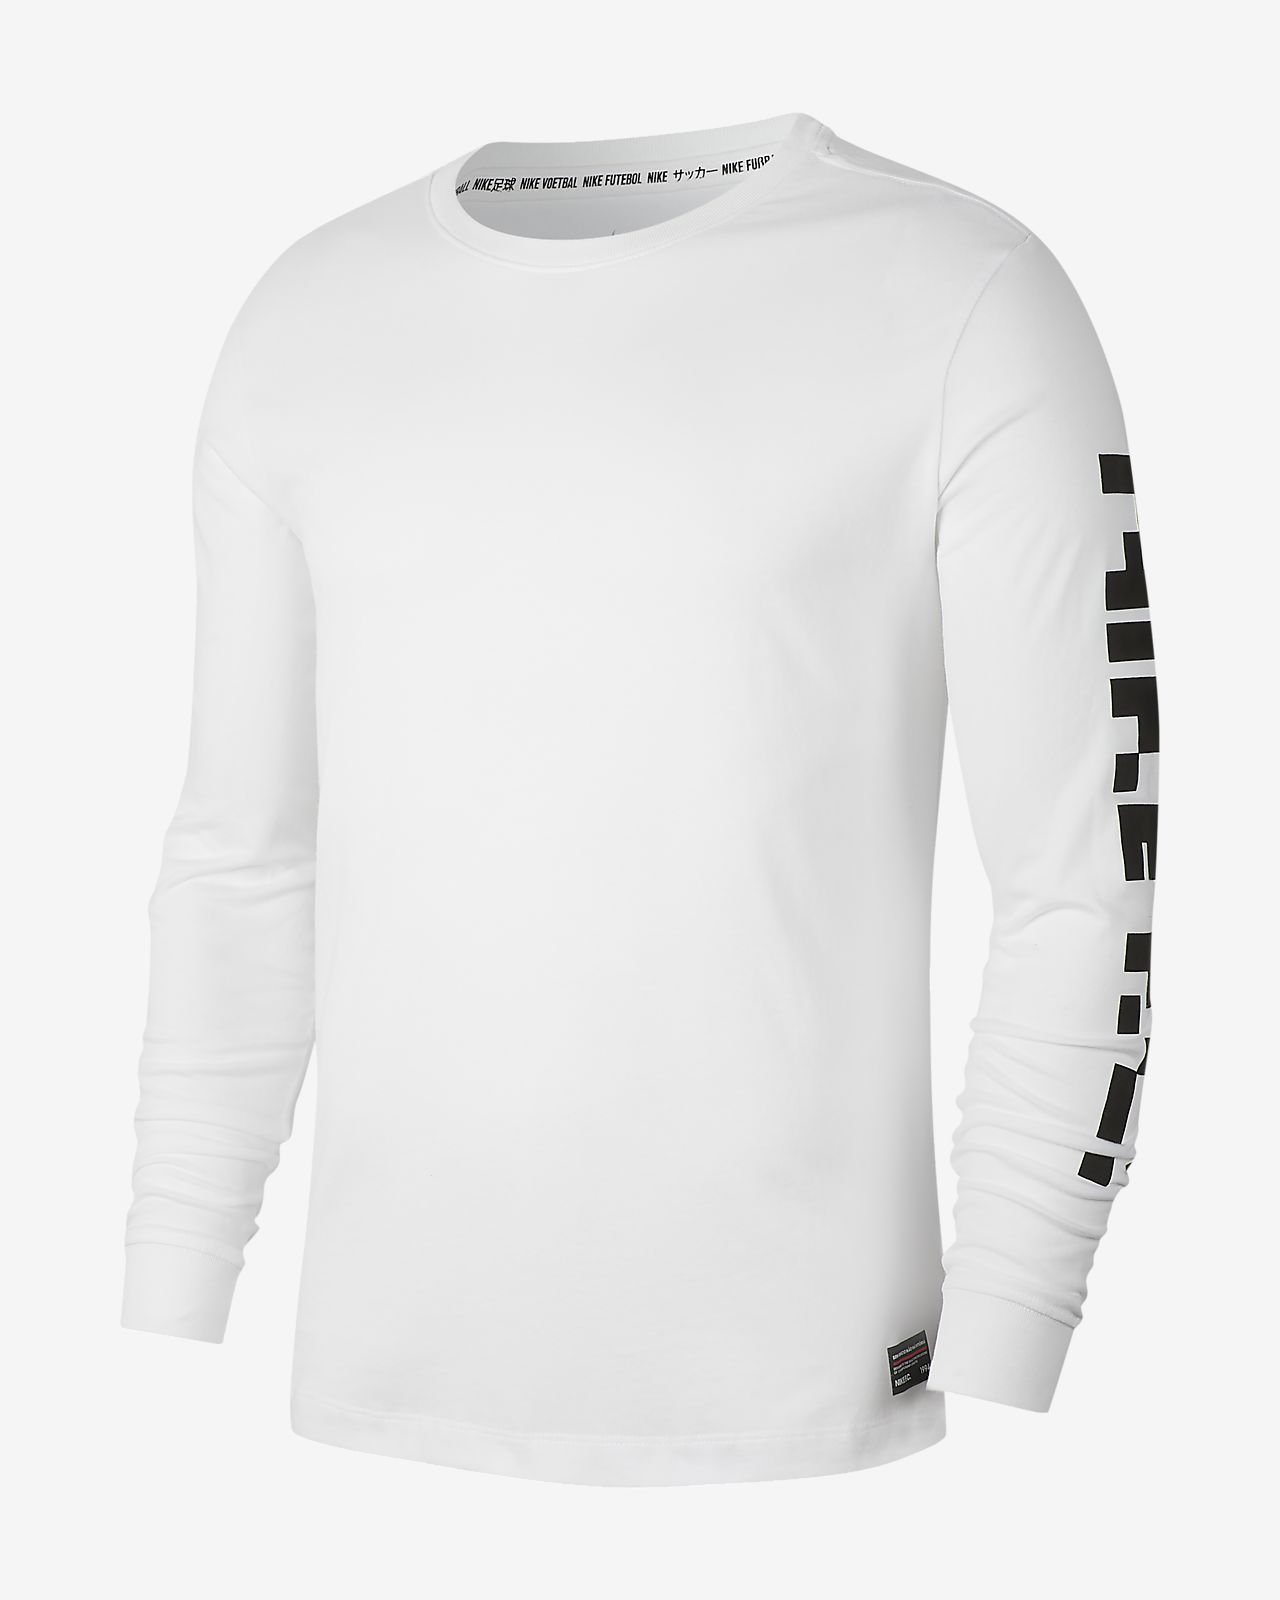 Nike Dri-FIT F.C. Men's Long-Sleeve Football T-Shirt